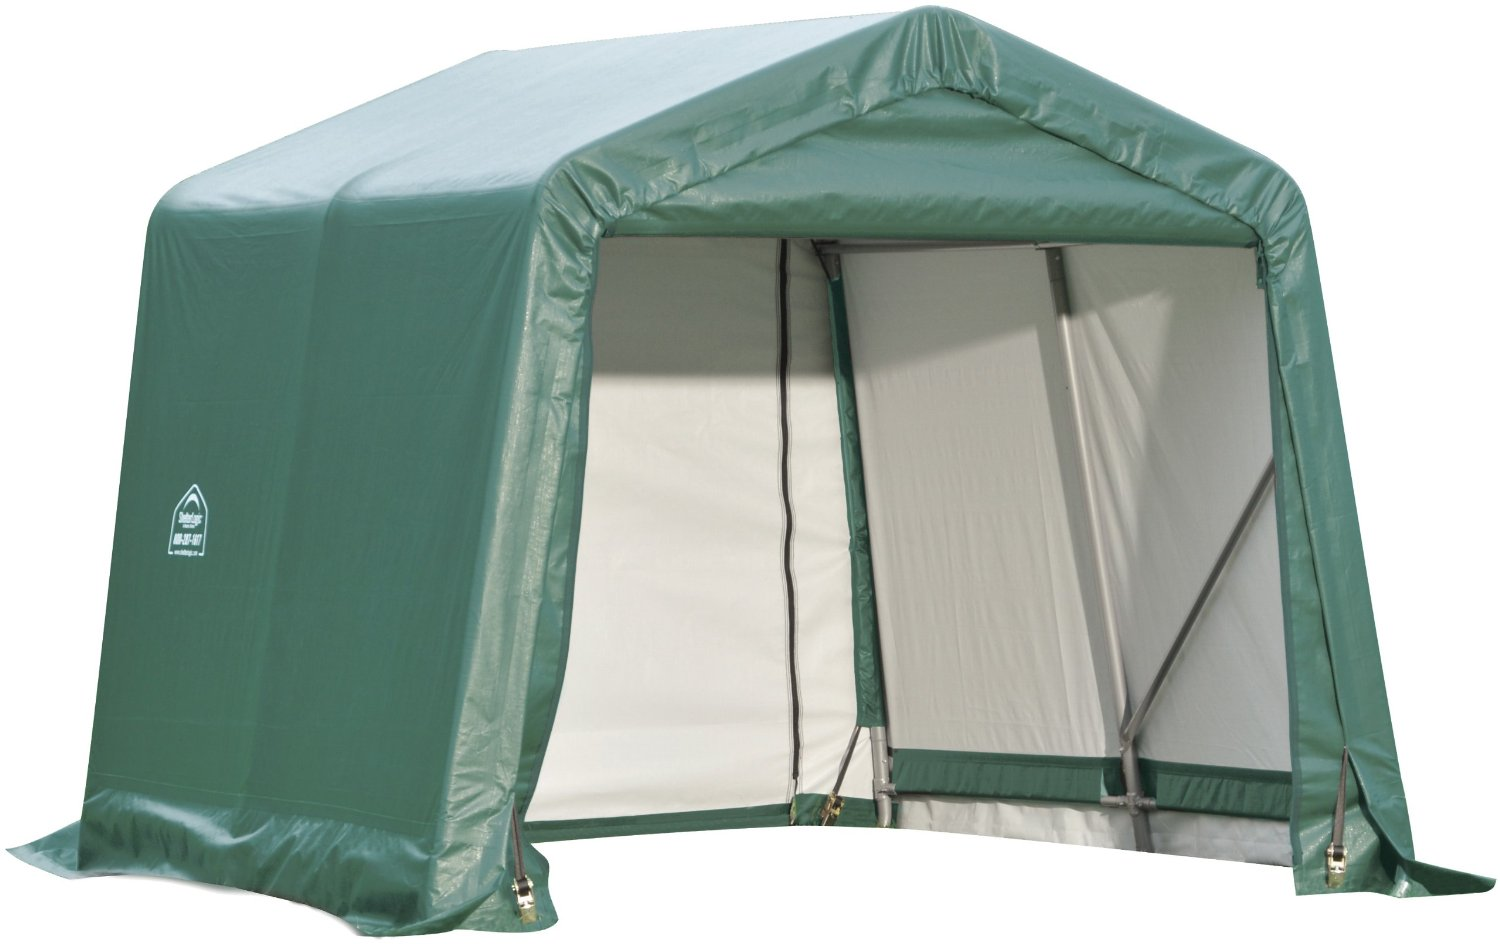 Peak Style Shelter, 11'x8'x10', Green Cover